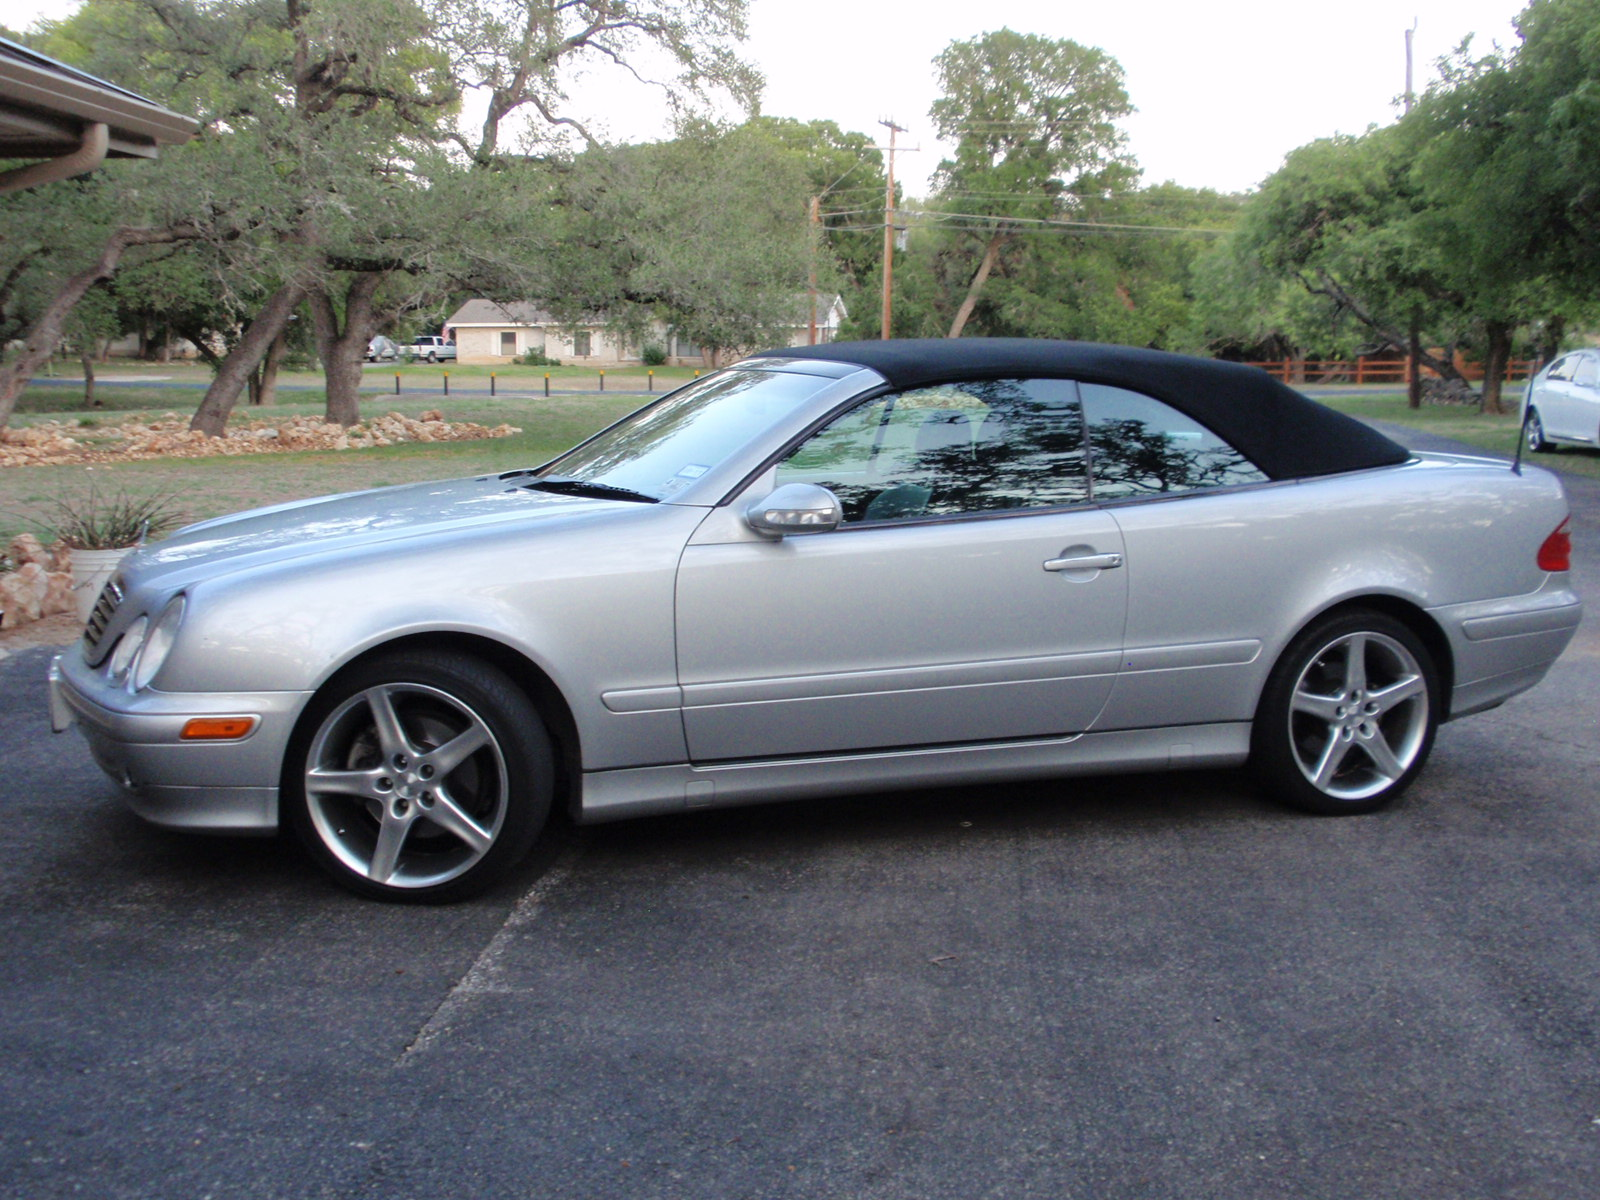 2002 Mercedes Benz Clk Class Information And Photos Zomb Drive